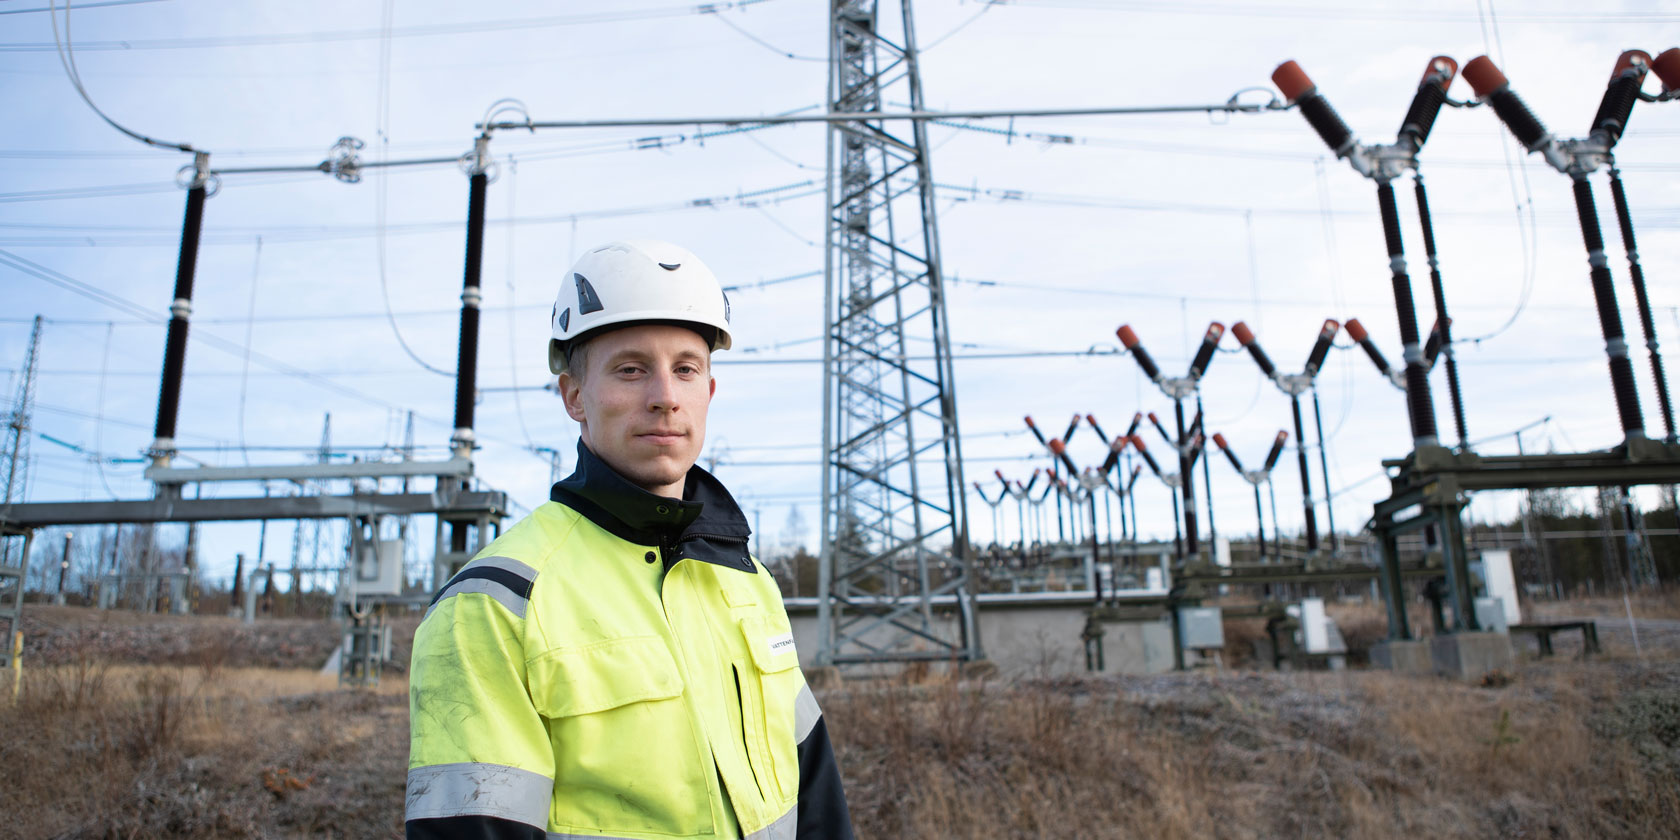 An employee at Harsprånget power station in the north of Sweden. Photo: Jennie Pettersson